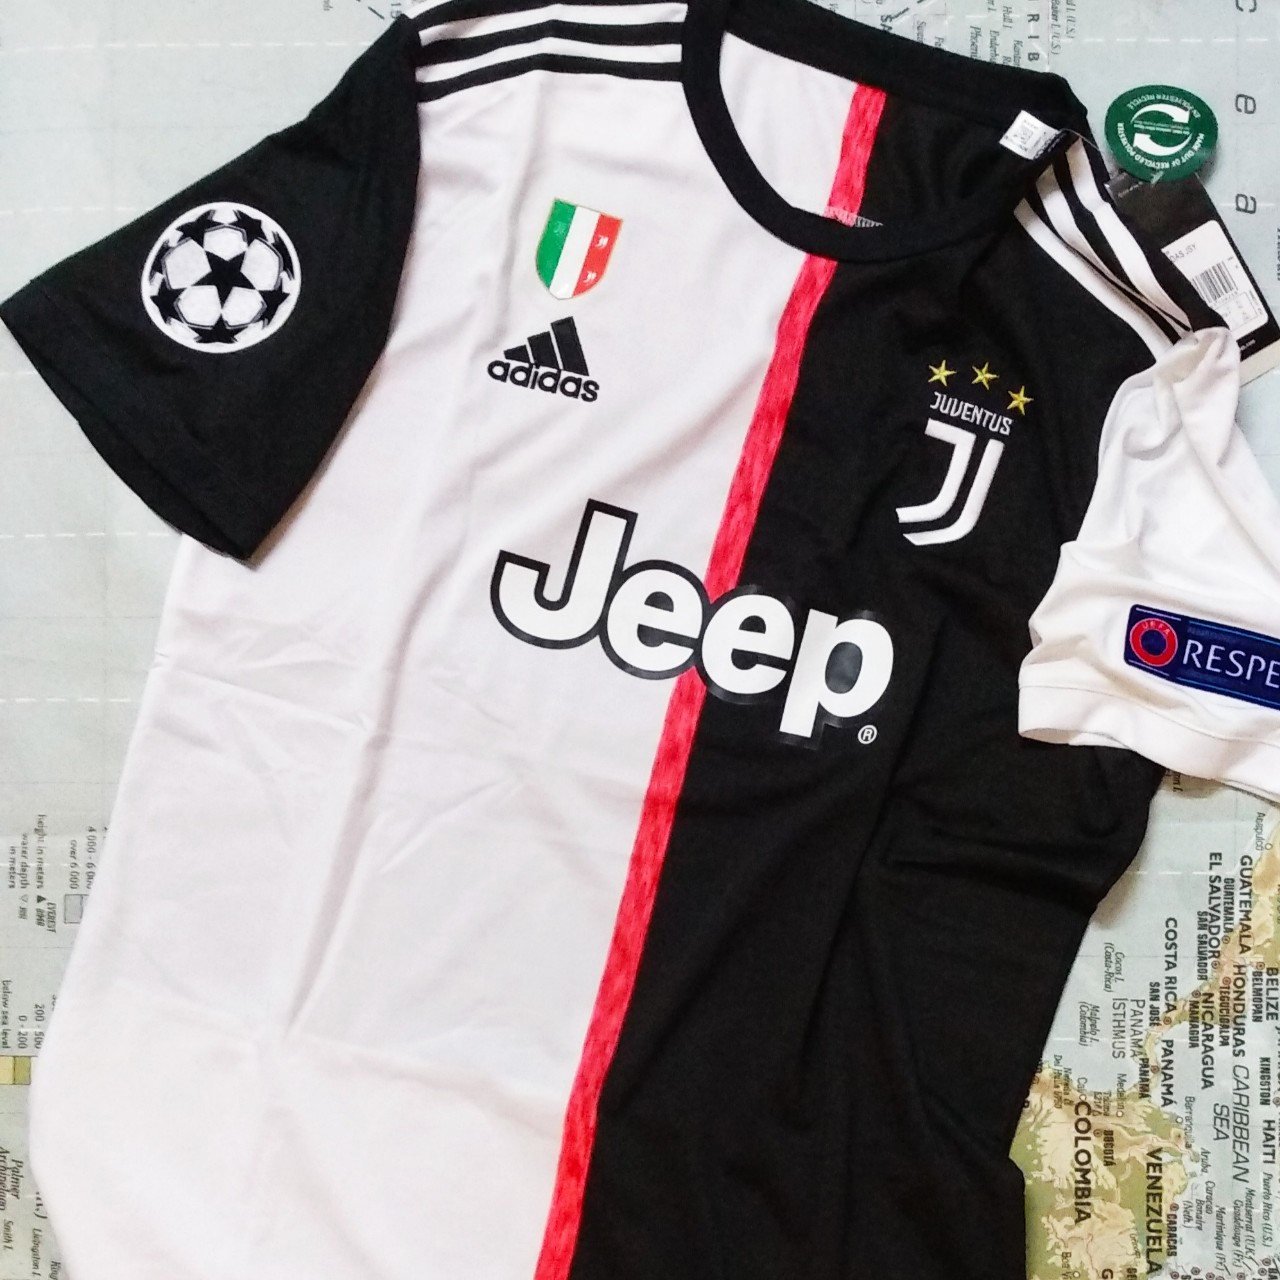 2019 20 juventus fc home jersey w ucl patches old depop 2019 20 juventus fc home jersey w ucl